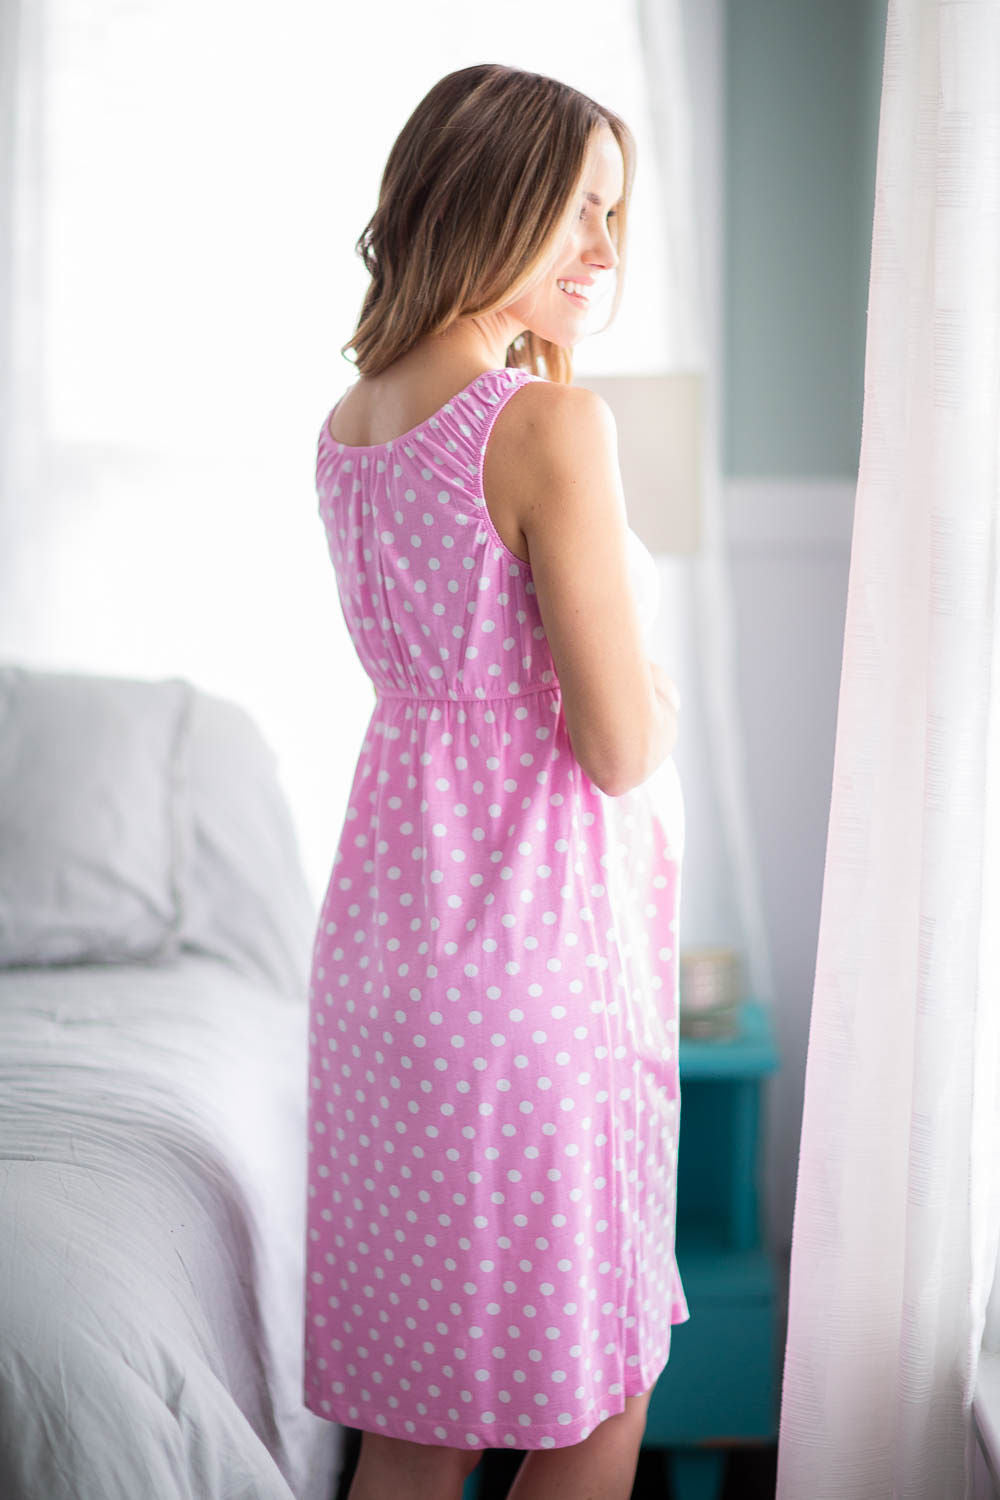 ec9ccc69e9dd5 Molly maternity/nursing nightgown matching baby going home outfit ...